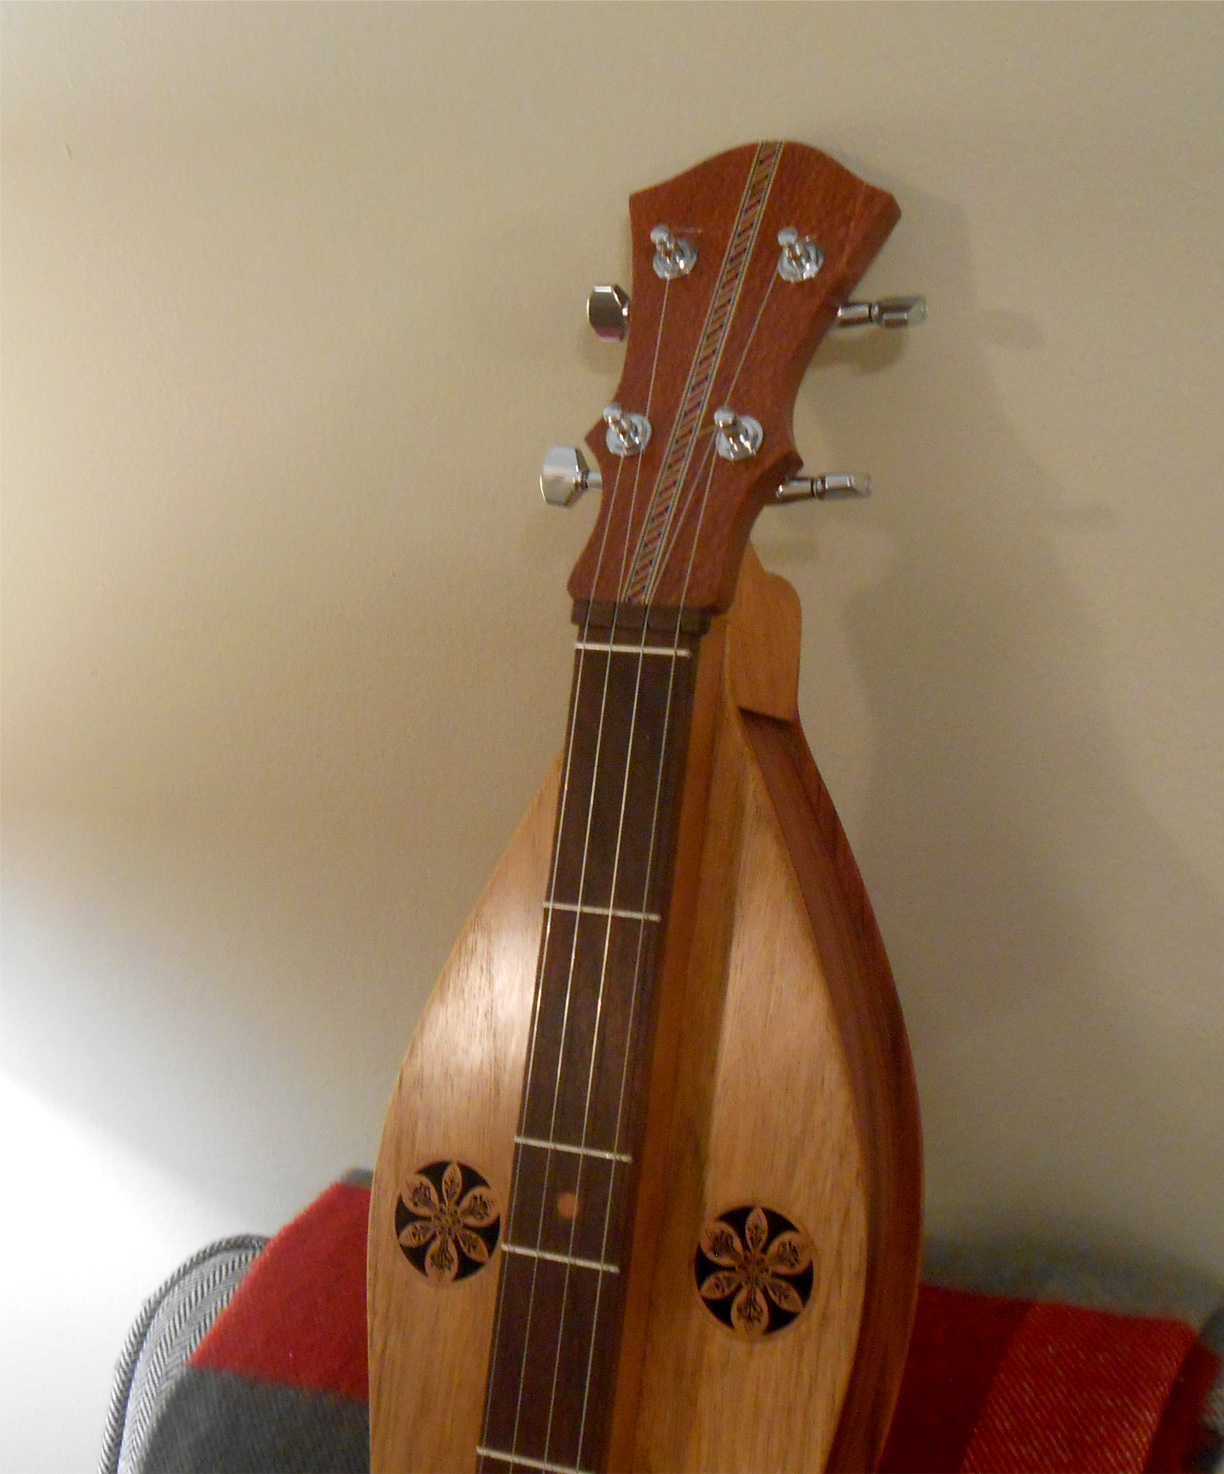 finished-bubinga-butternut-mountain-dulcimer